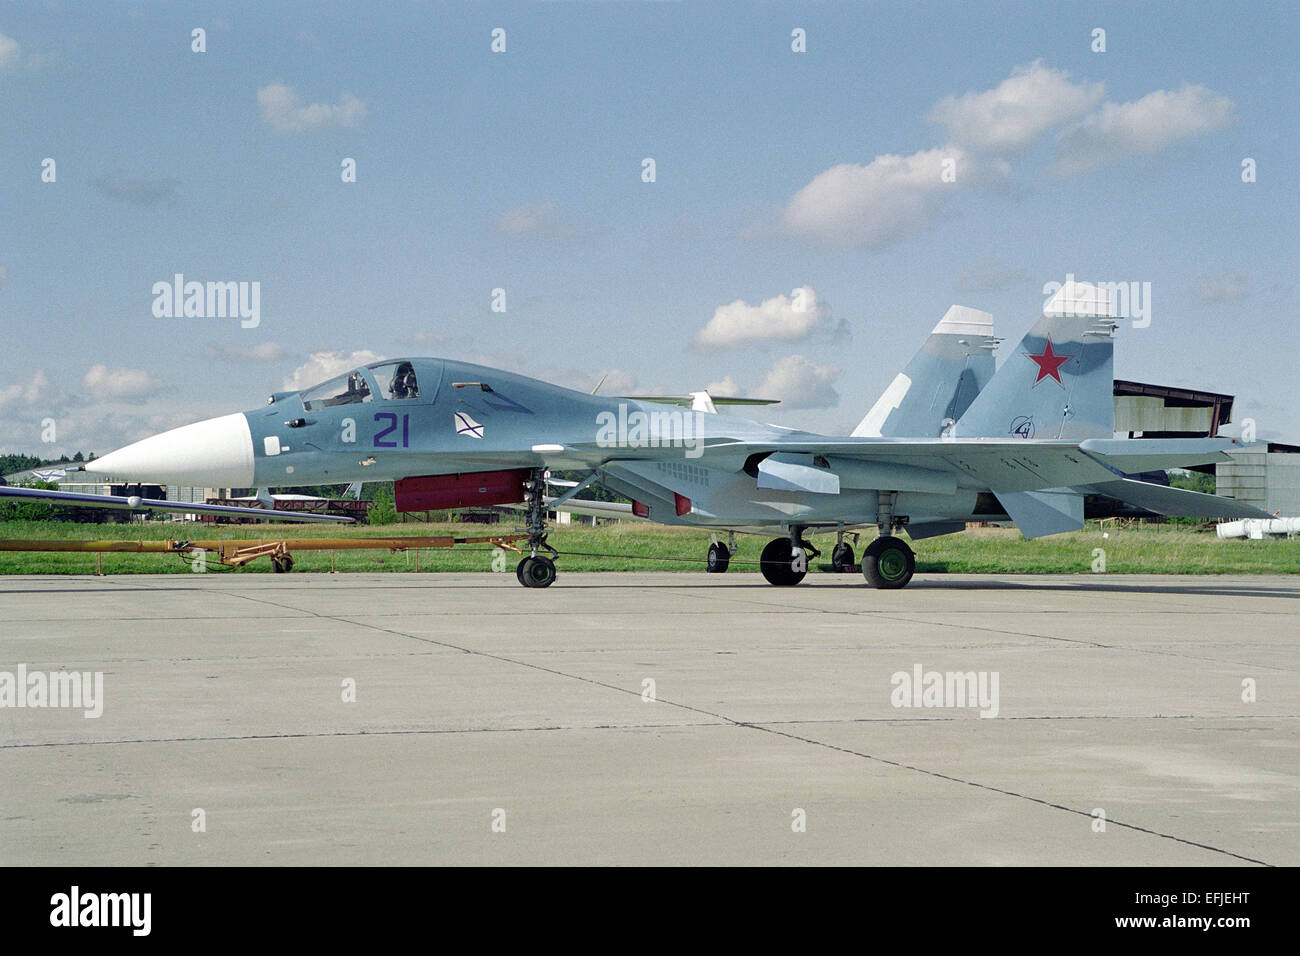 Carrier-based combat trainer aircraft Sukhoi Su-27KUB - Stock Image